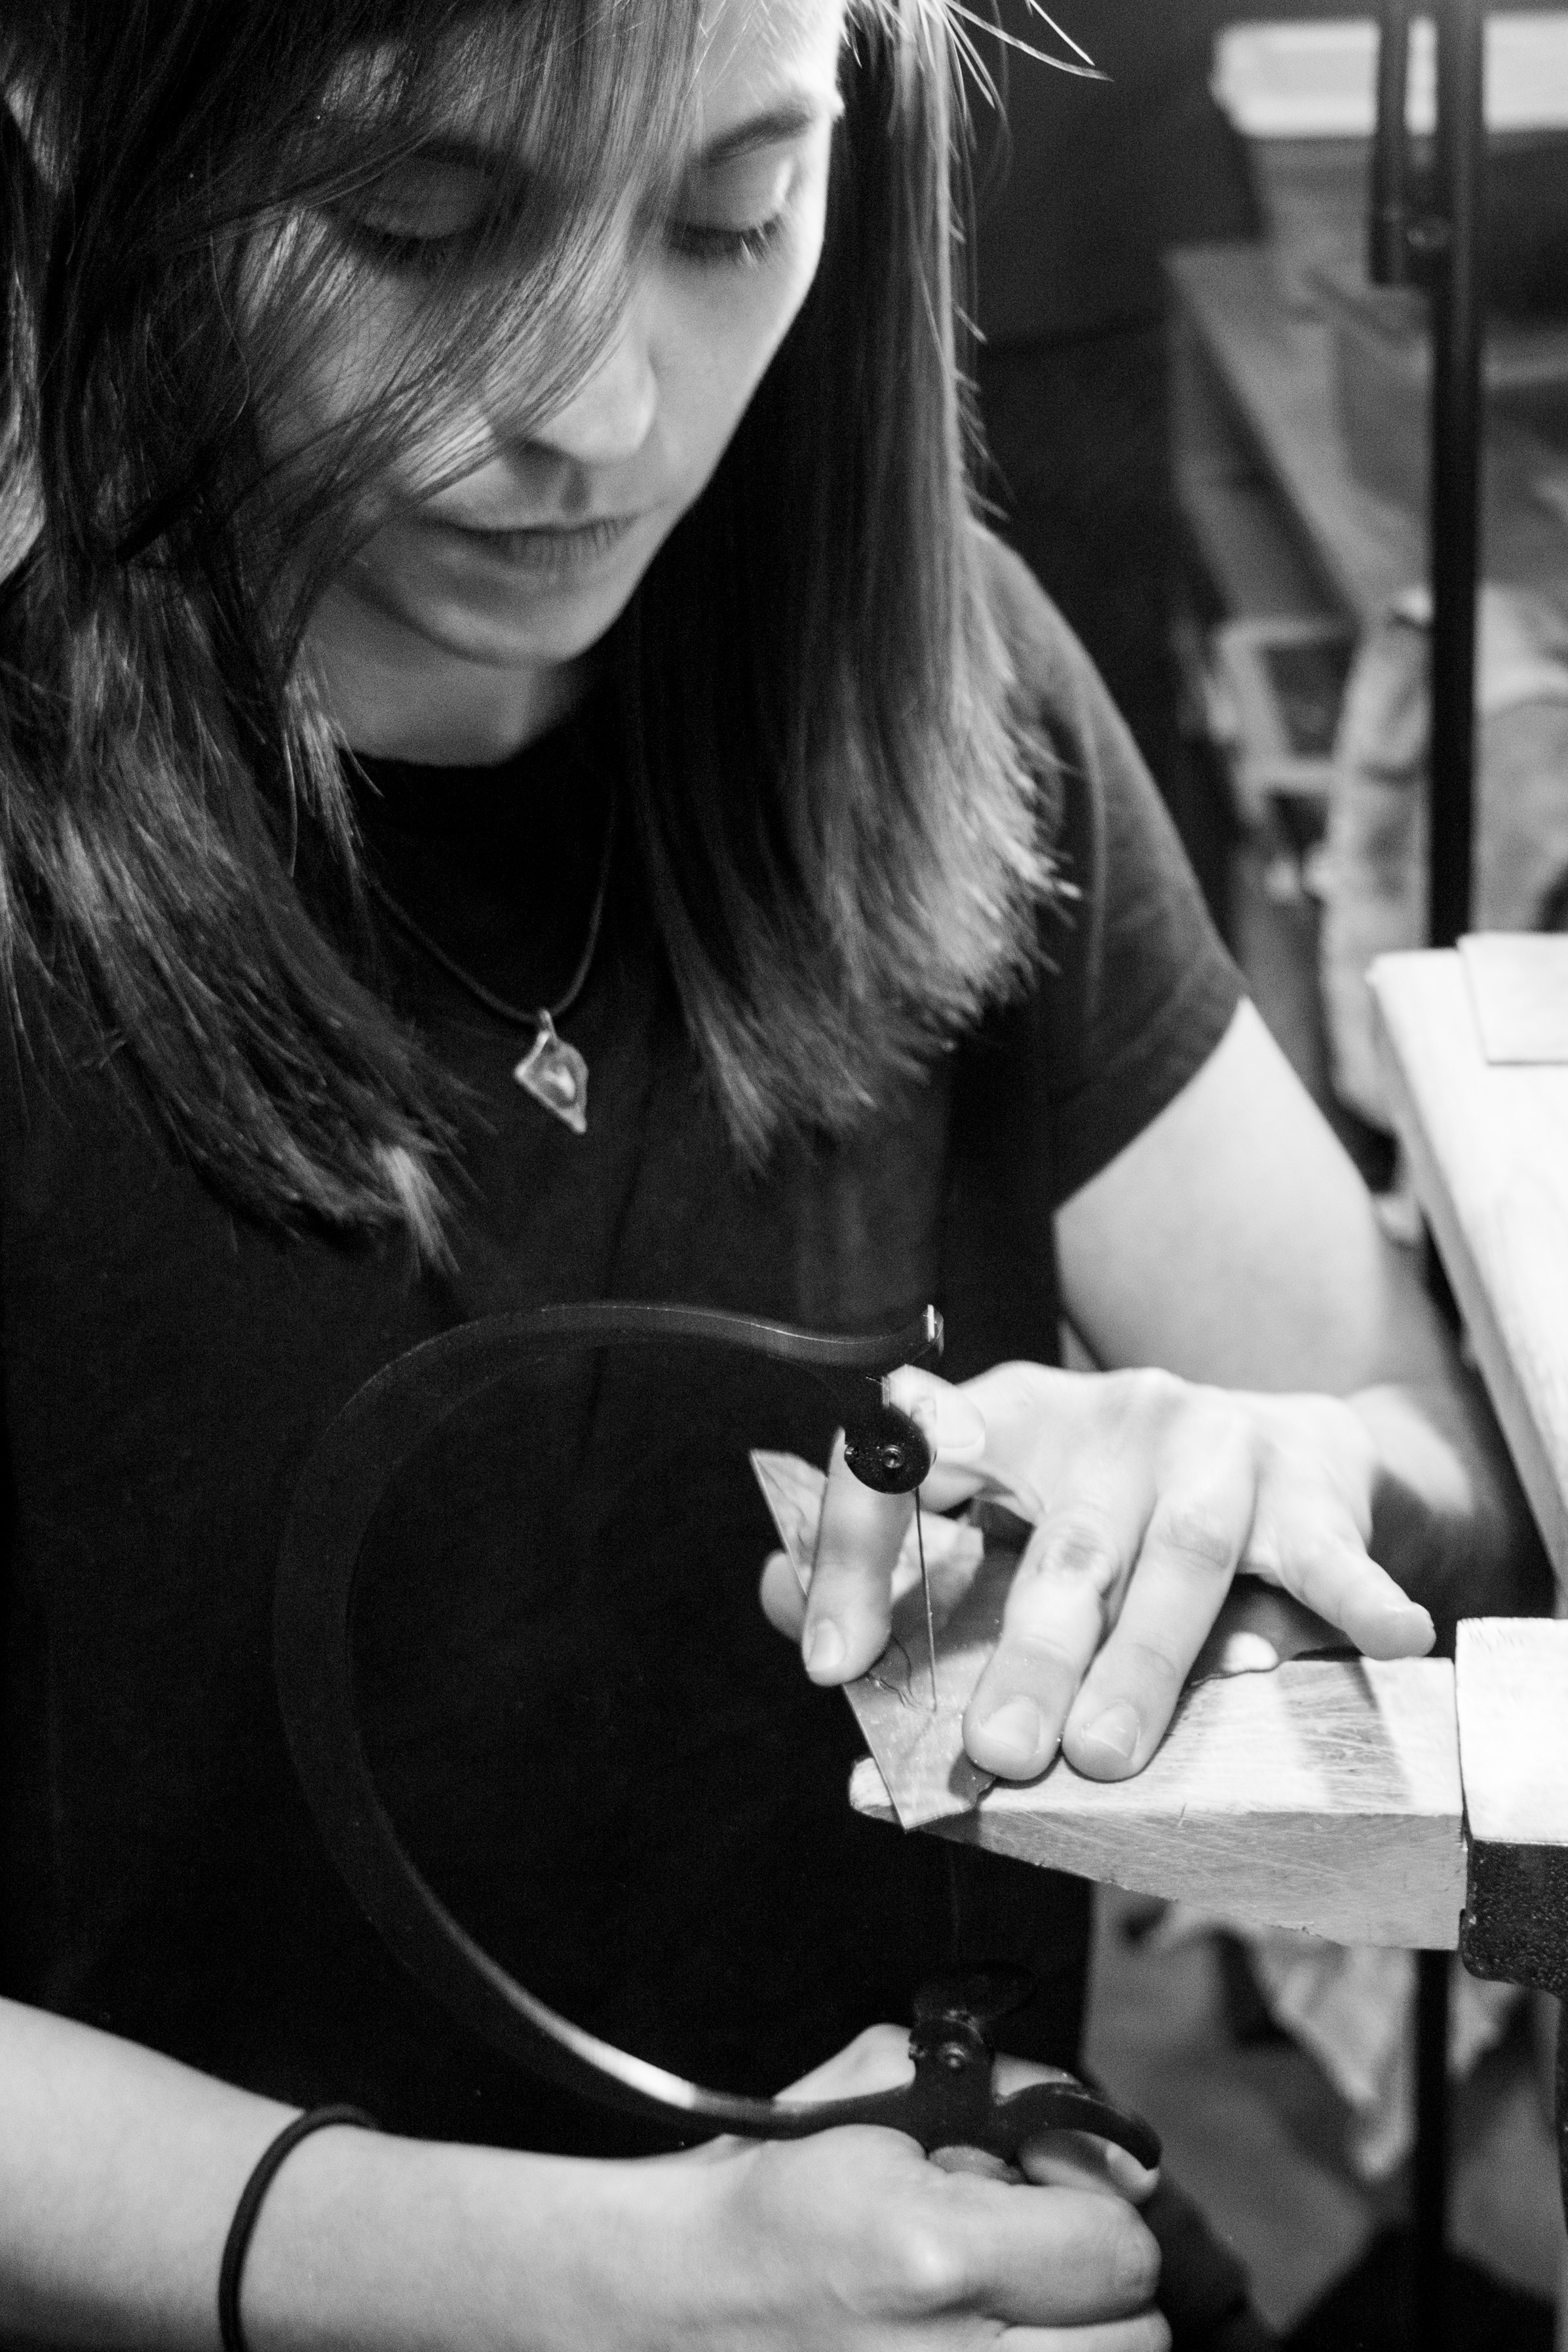 arianna-morales-metalsmith-workshop.jpg